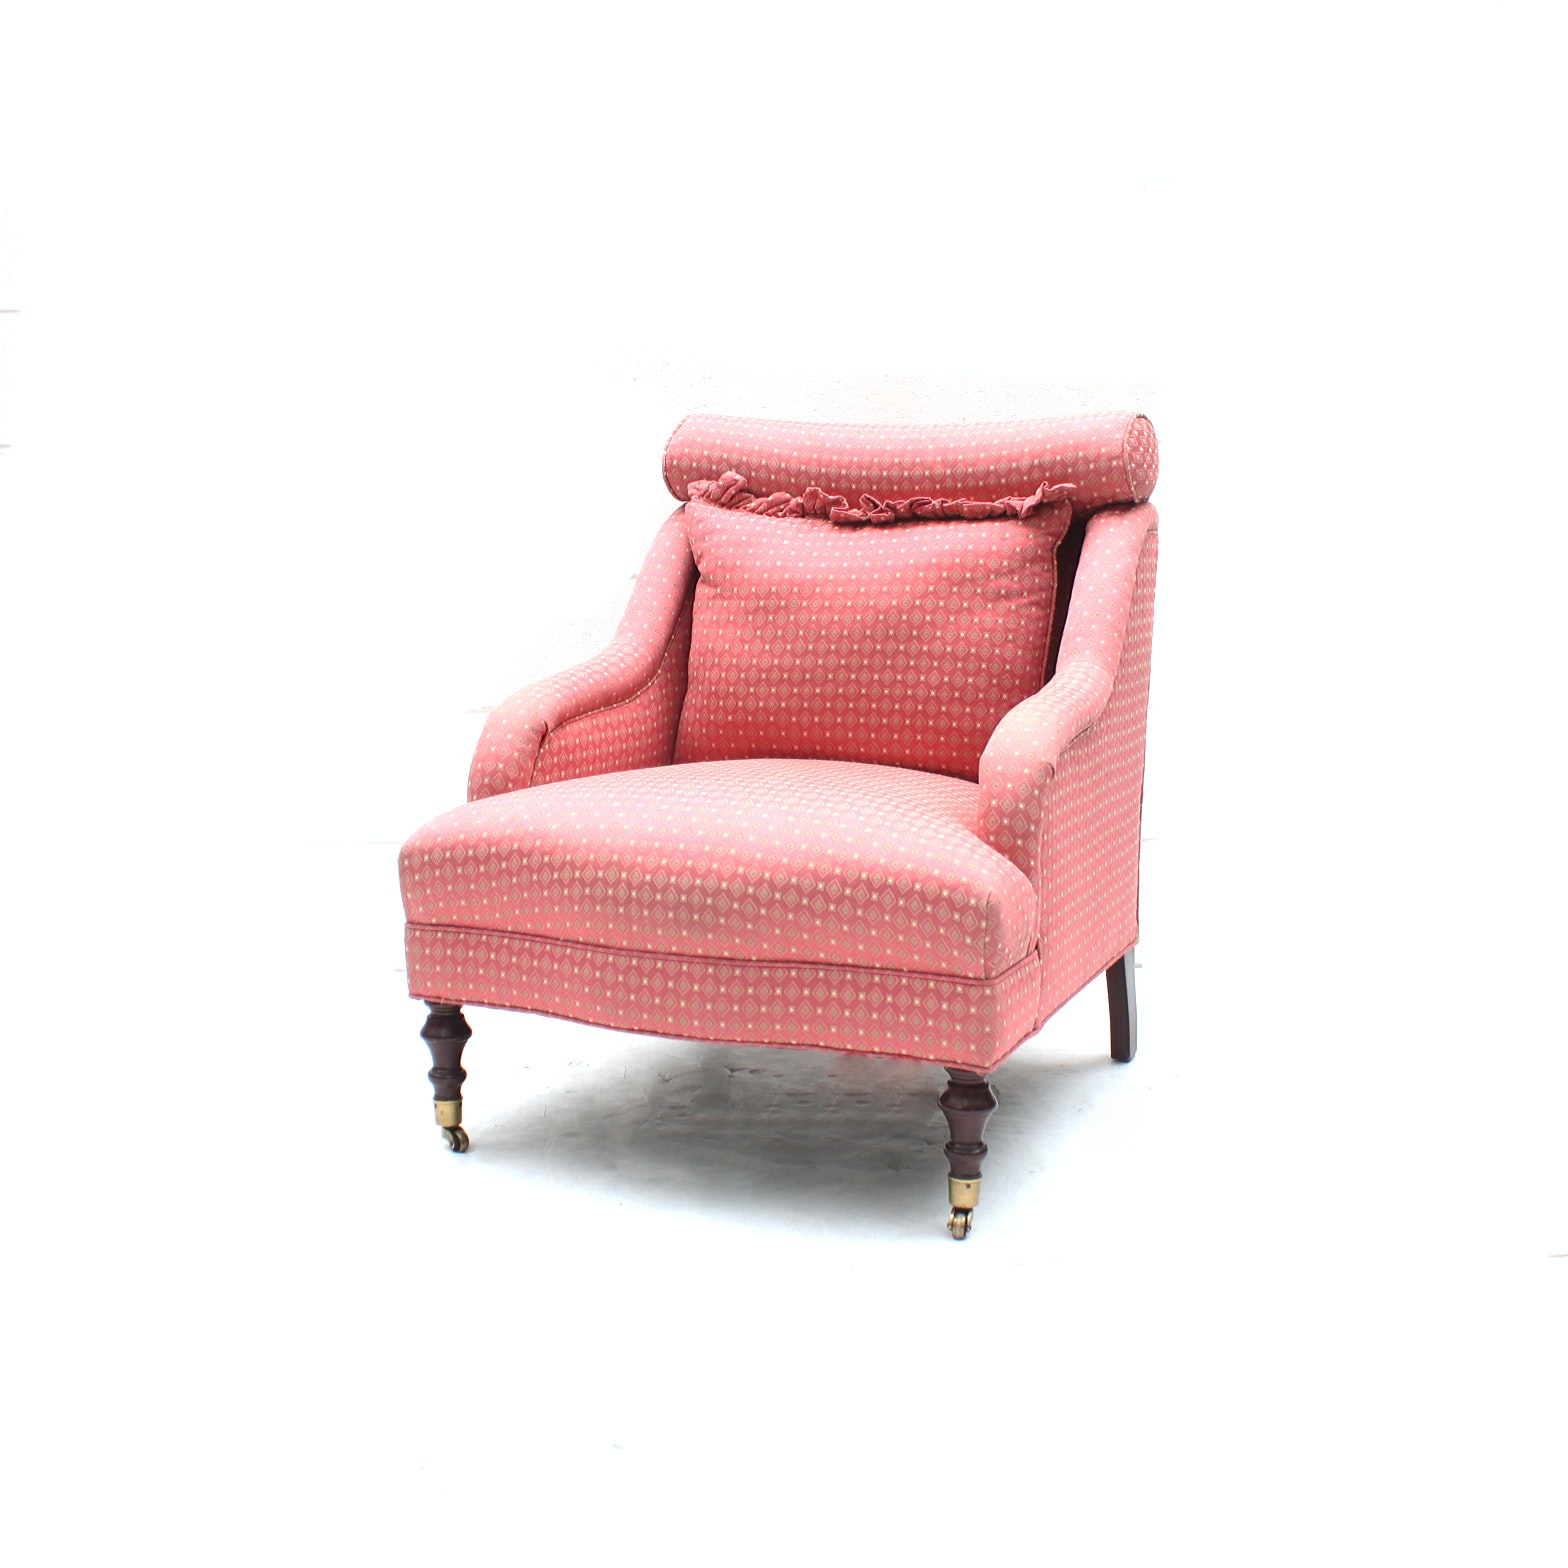 Pink Upholstered Armchair